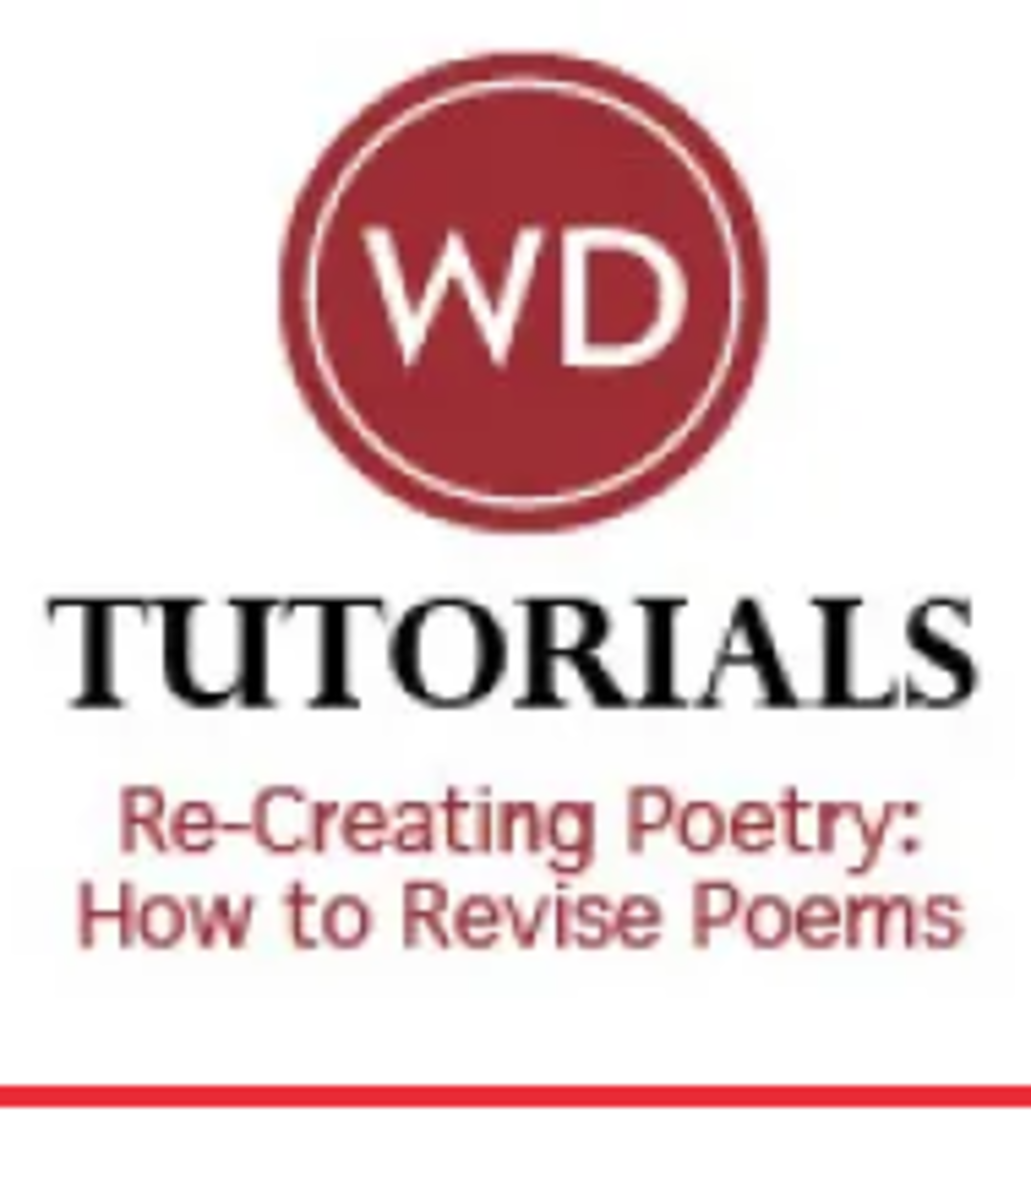 Recreating Poetry How to Revise Poems